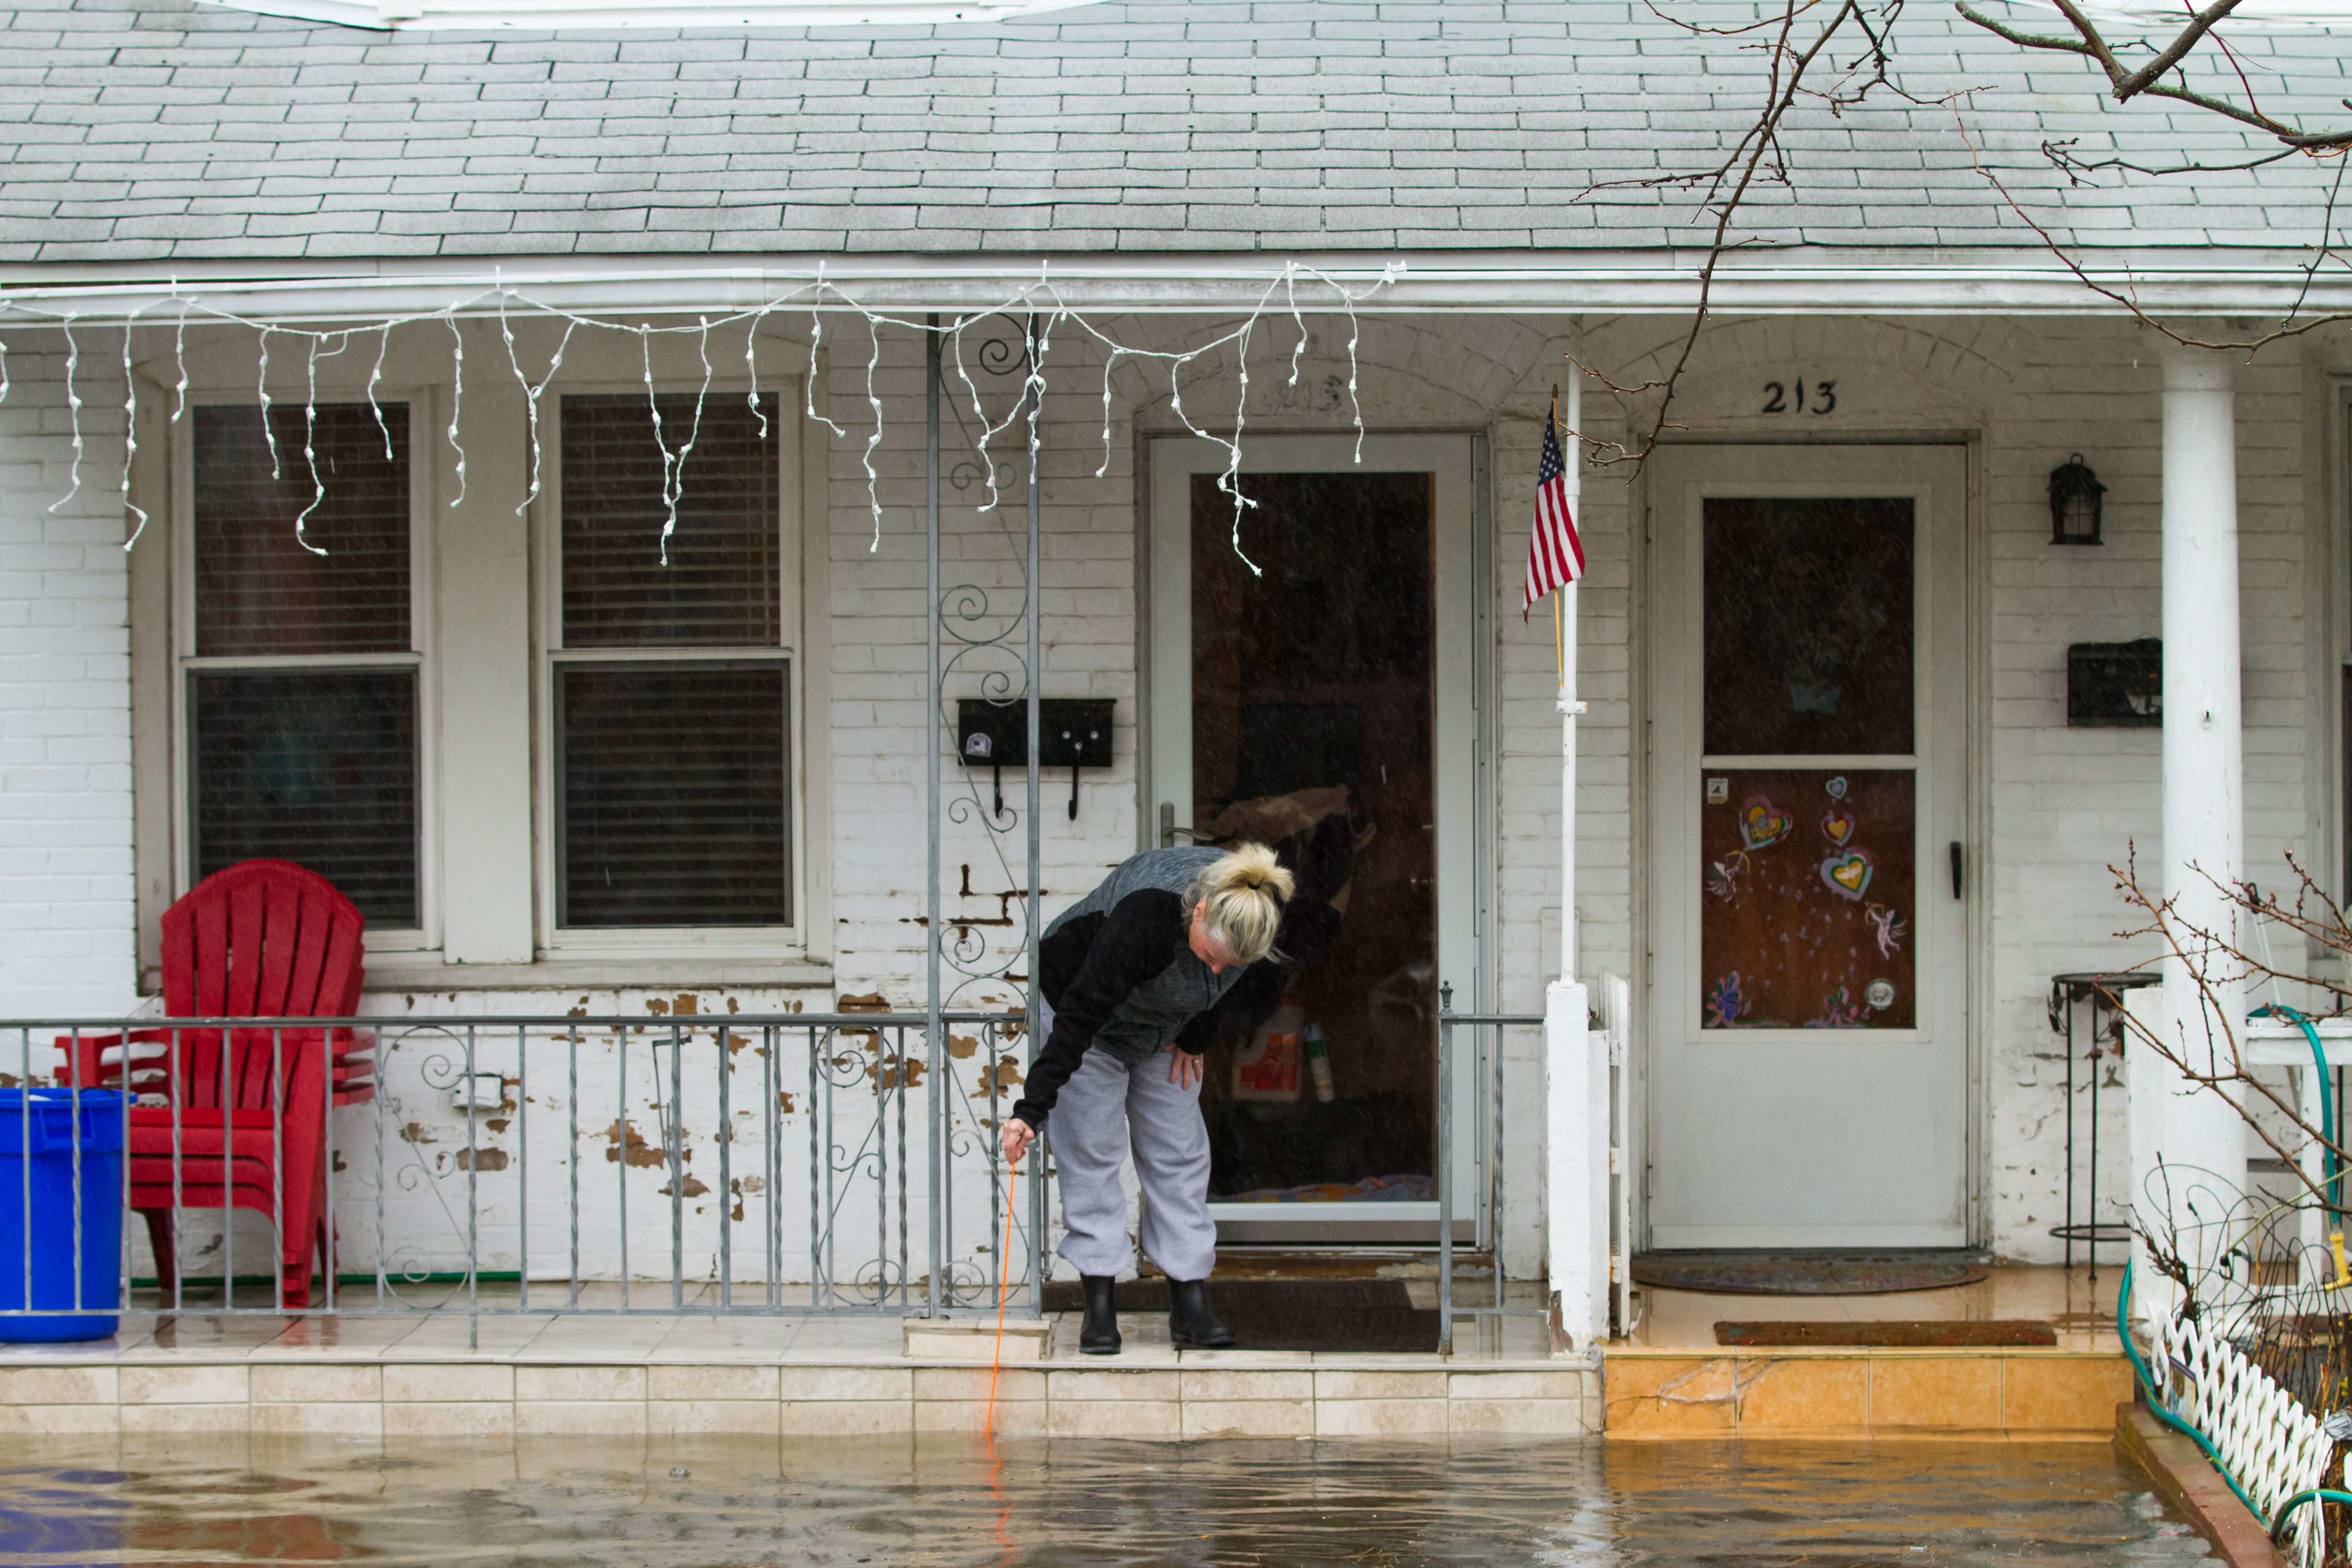 Flooding In New Jersey Floods Are Driving Up Insurance Rates